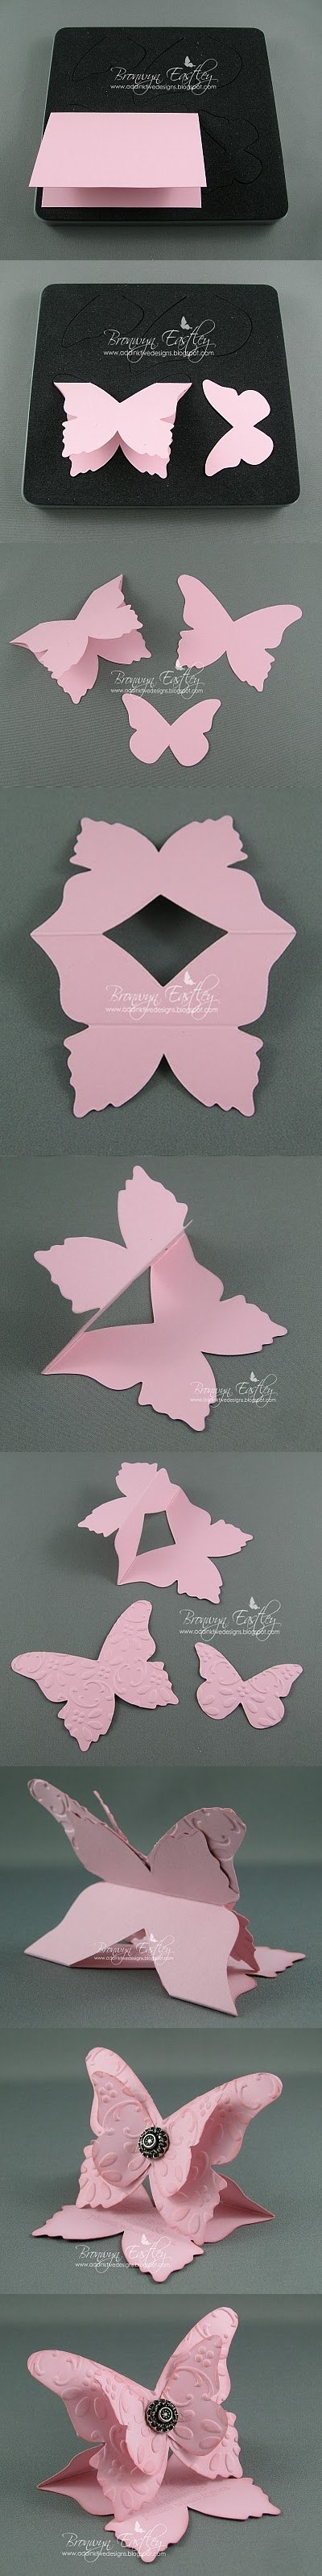 DIY 3D Butterfly-Shaped Greeting Card | www.FabArtDIY.com LIKE Us on Facebook ==> https://www.facebook.com/FabArtDIY